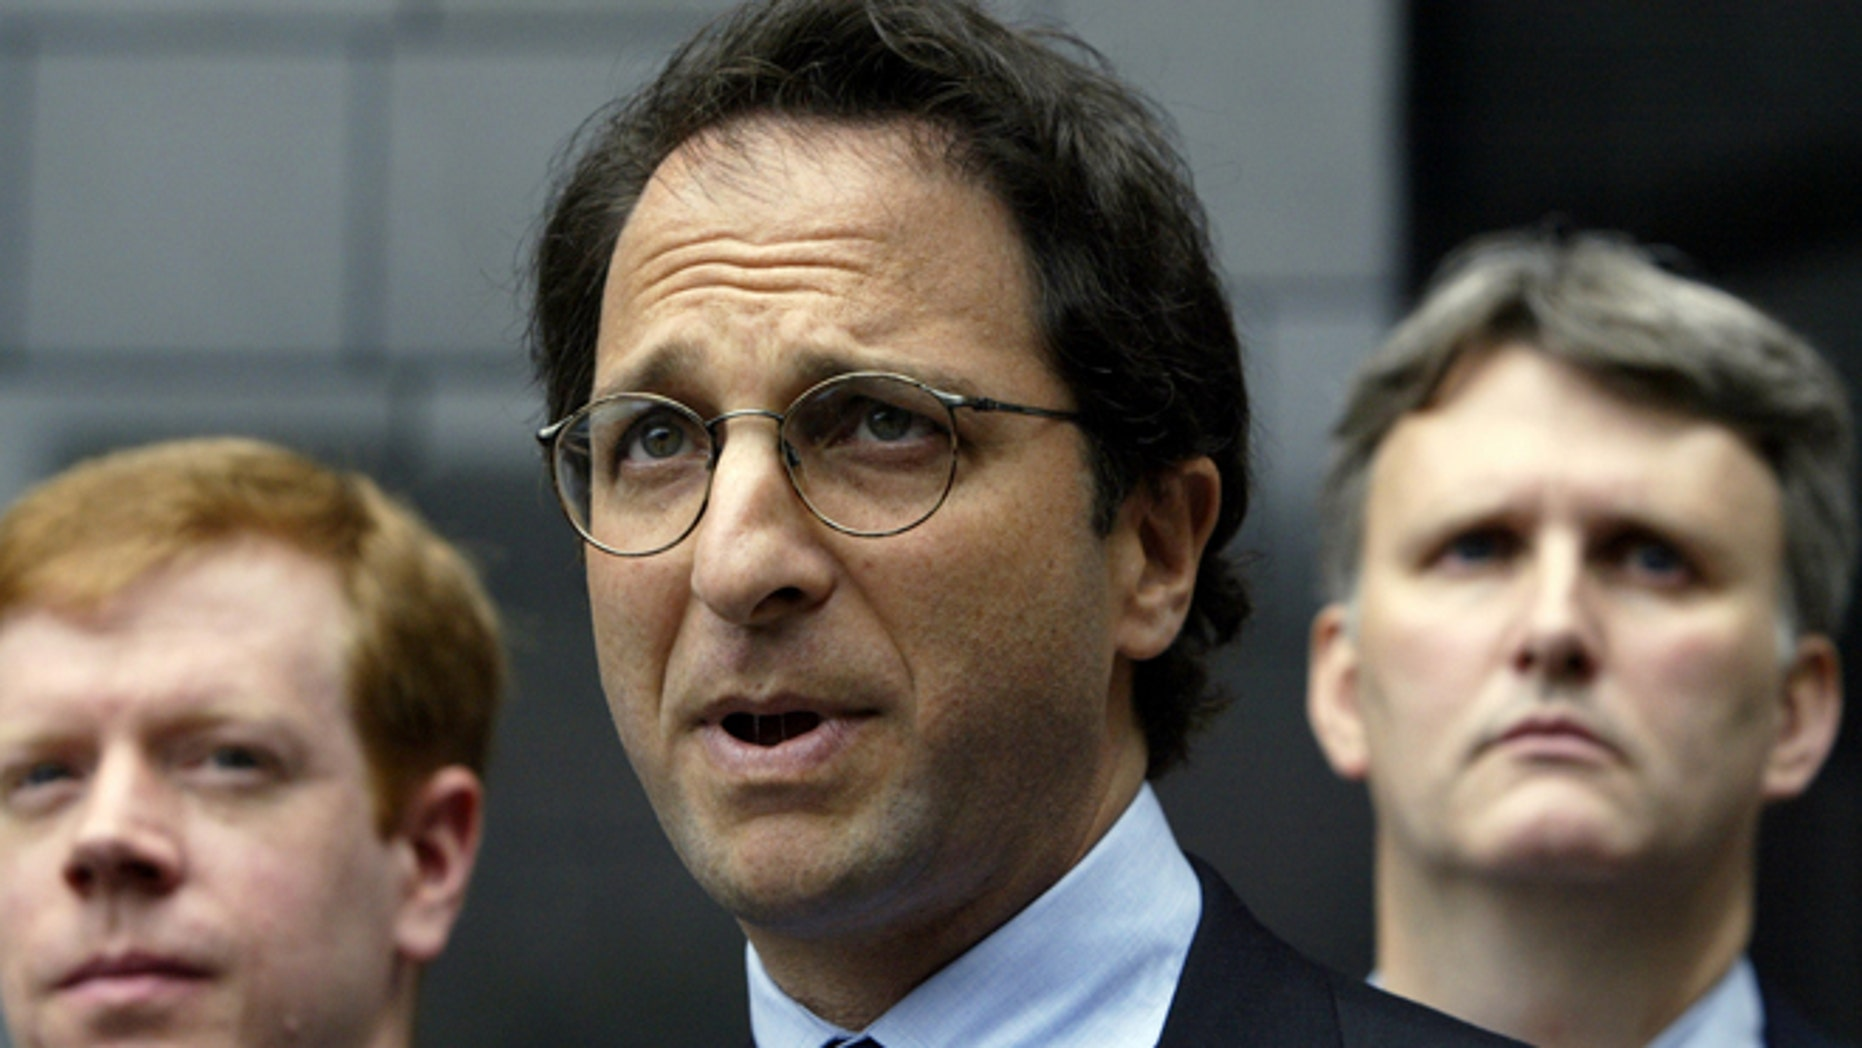 Andrew Weissmann, an attorney on Special Counsel Robert Mueller's team, is reportedly leaving the Justice Department.